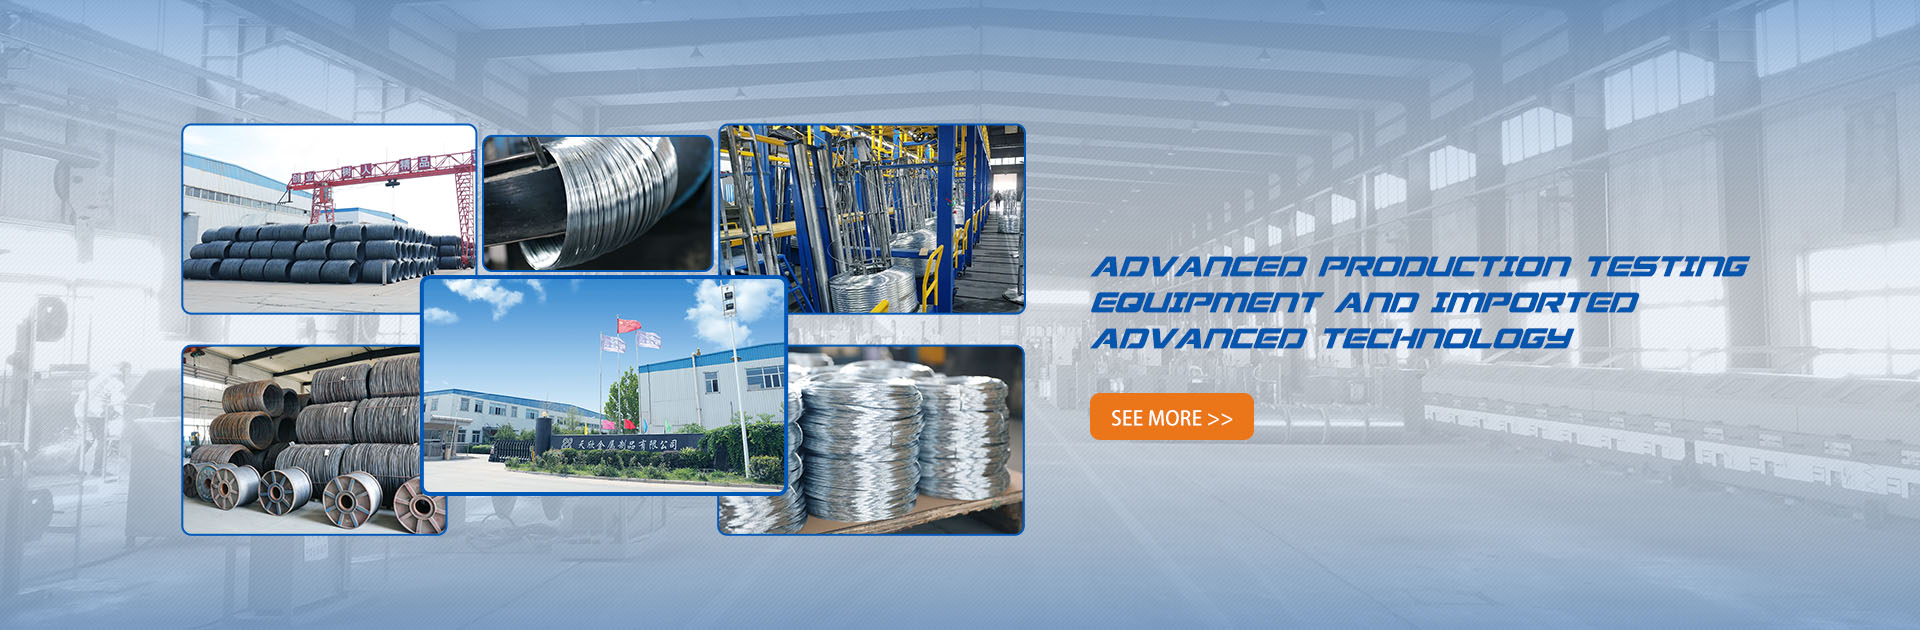 Advanced production testing equipment and imported advanced technology